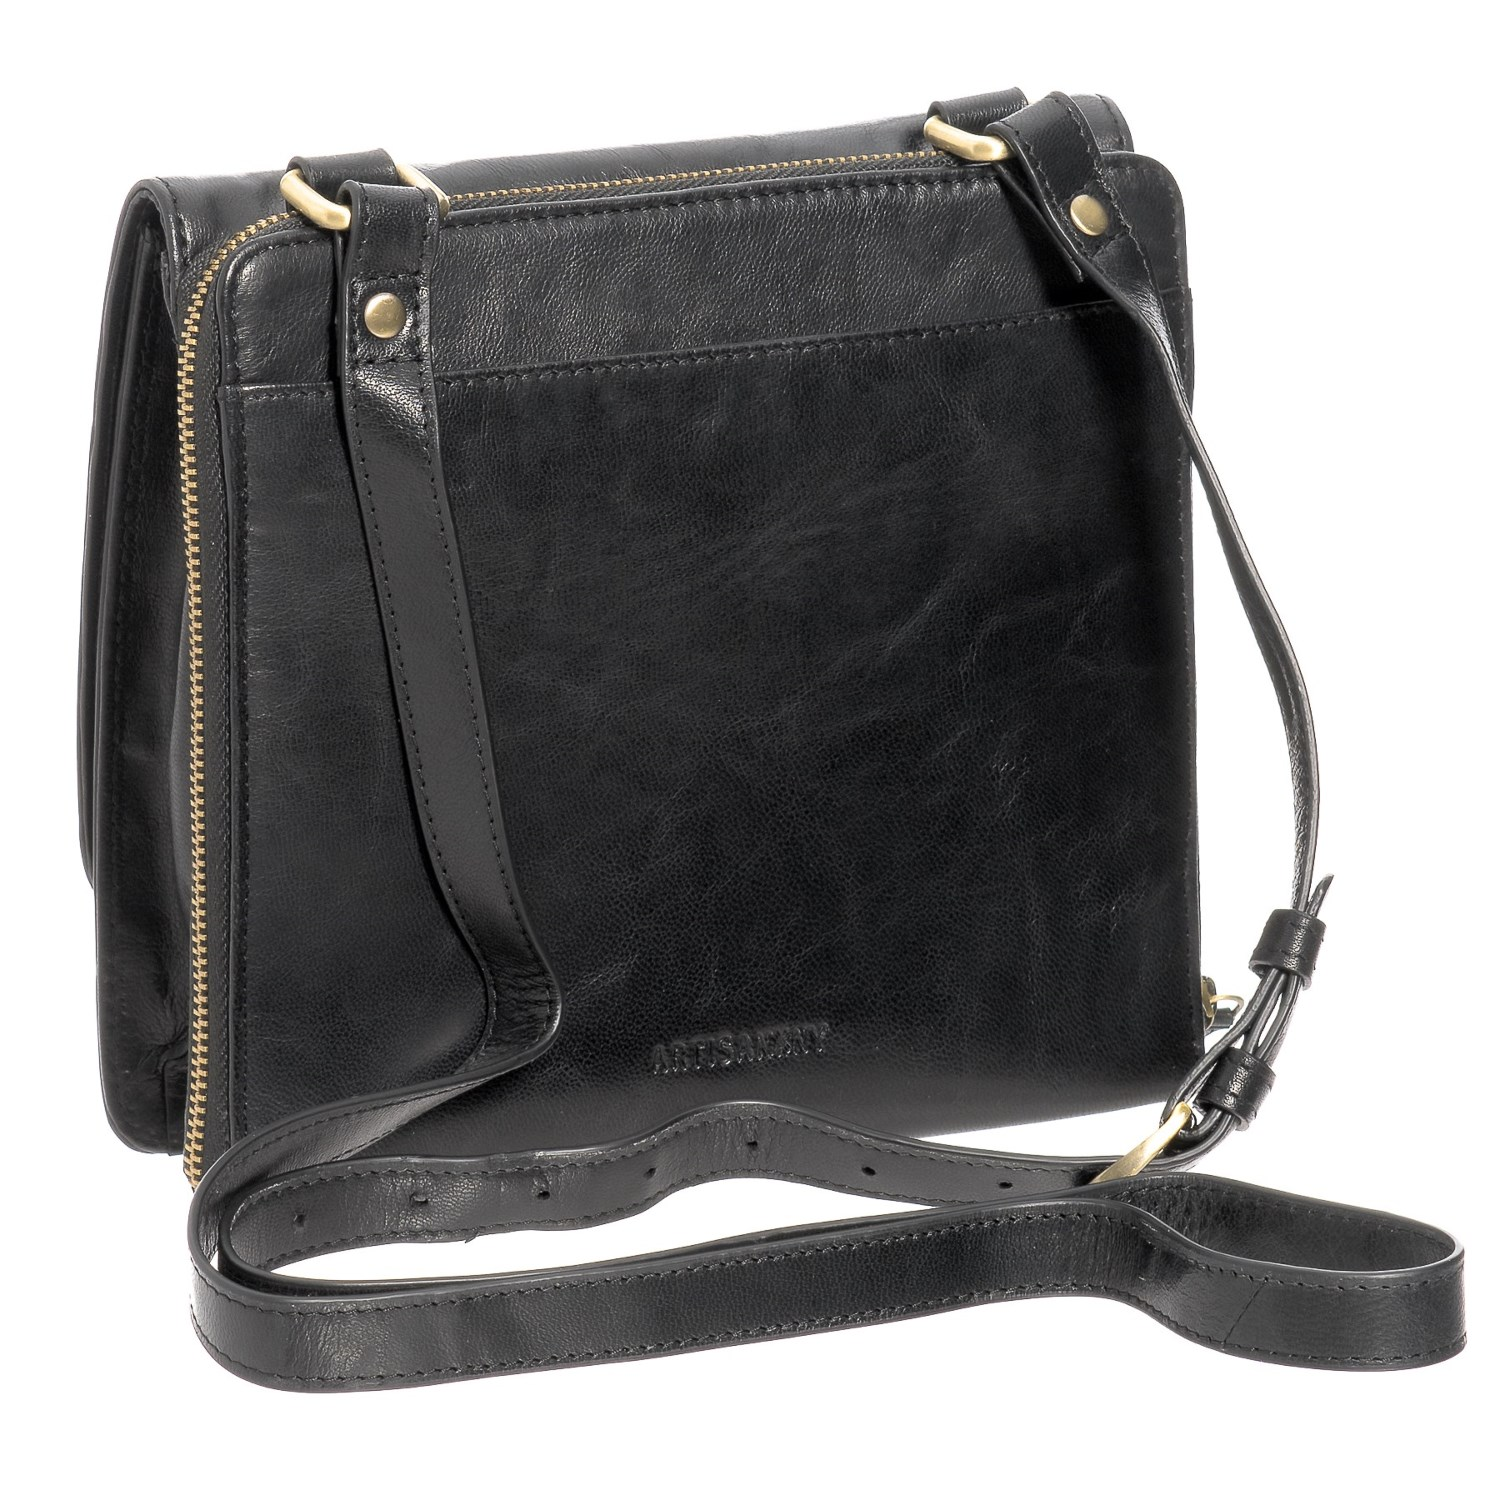 Ny Rubbed Leather Organizer Crossbody Bag